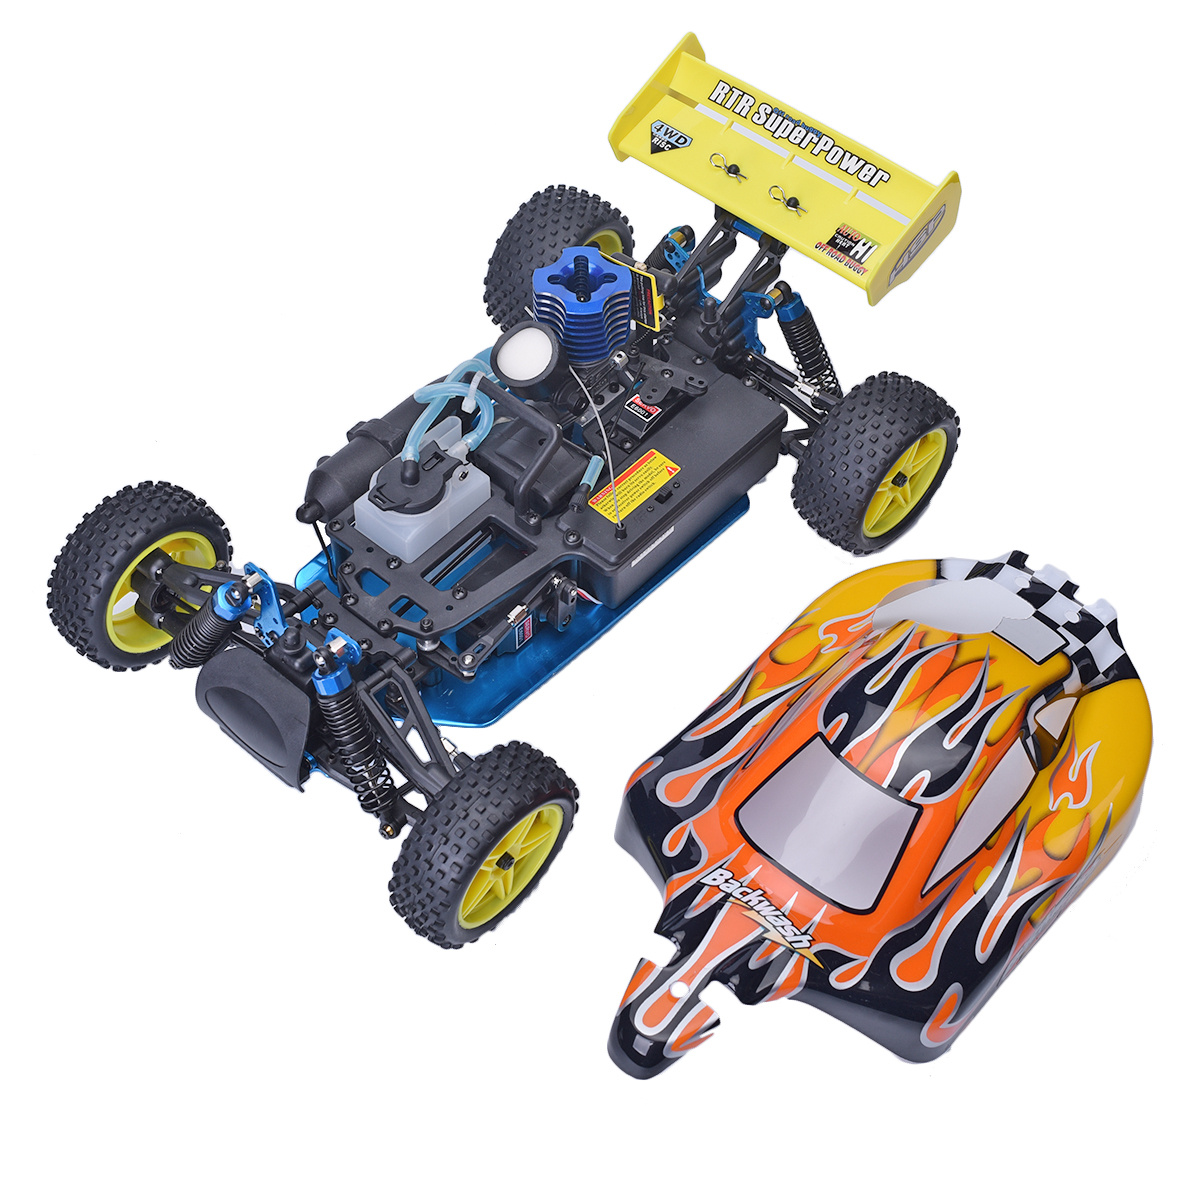 Shop if you want the widest selection or Remote Control Toys. We carry everything from Cars, Trucks, Helicopters, Planes, Boats, and Tanks.